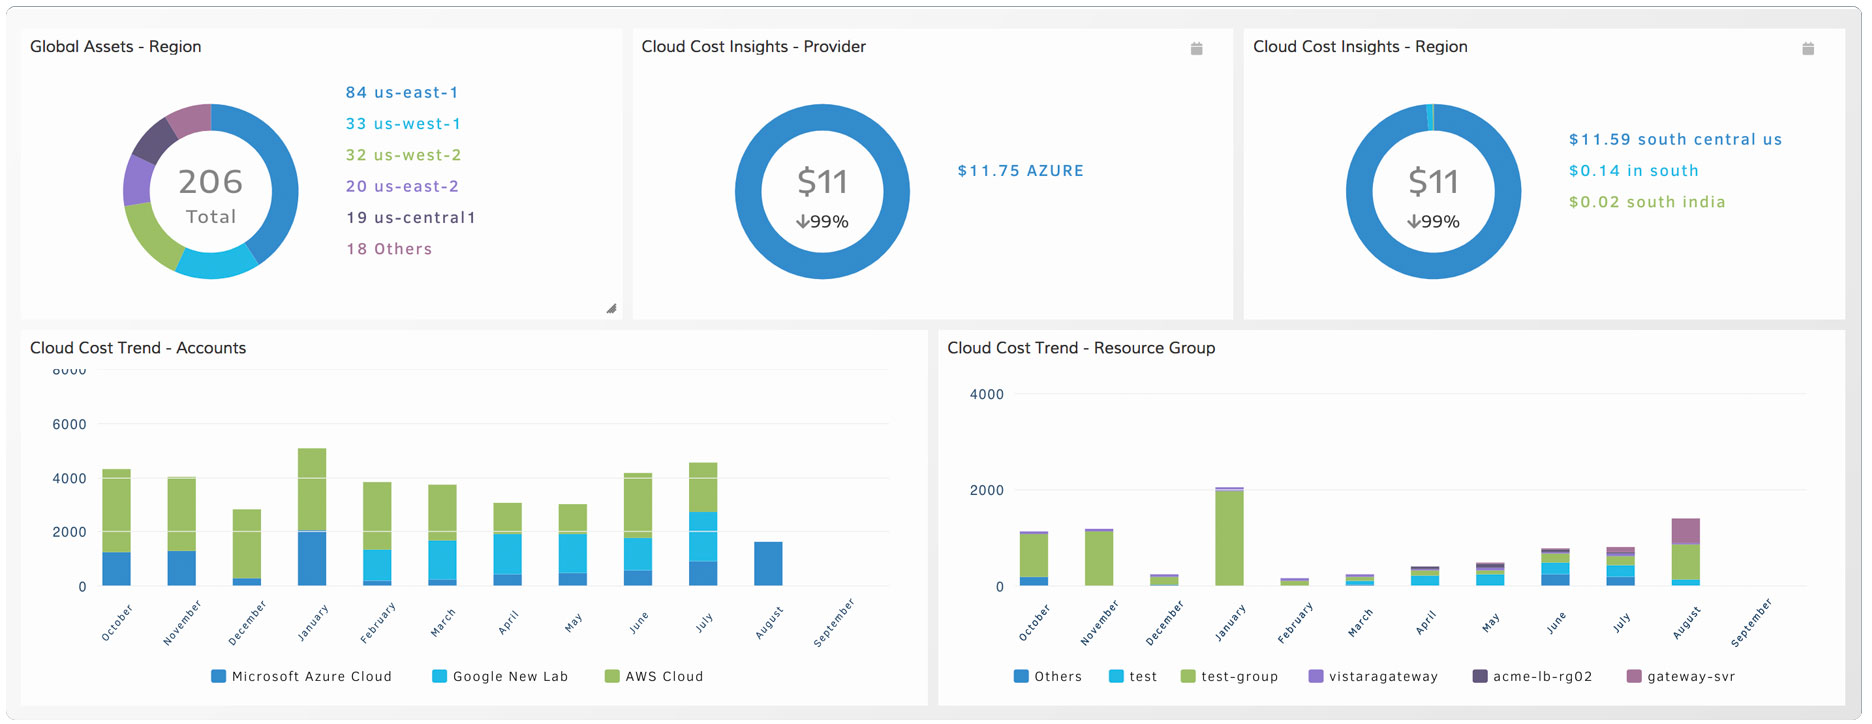 Cloud-Cost-Insights-and-Trends